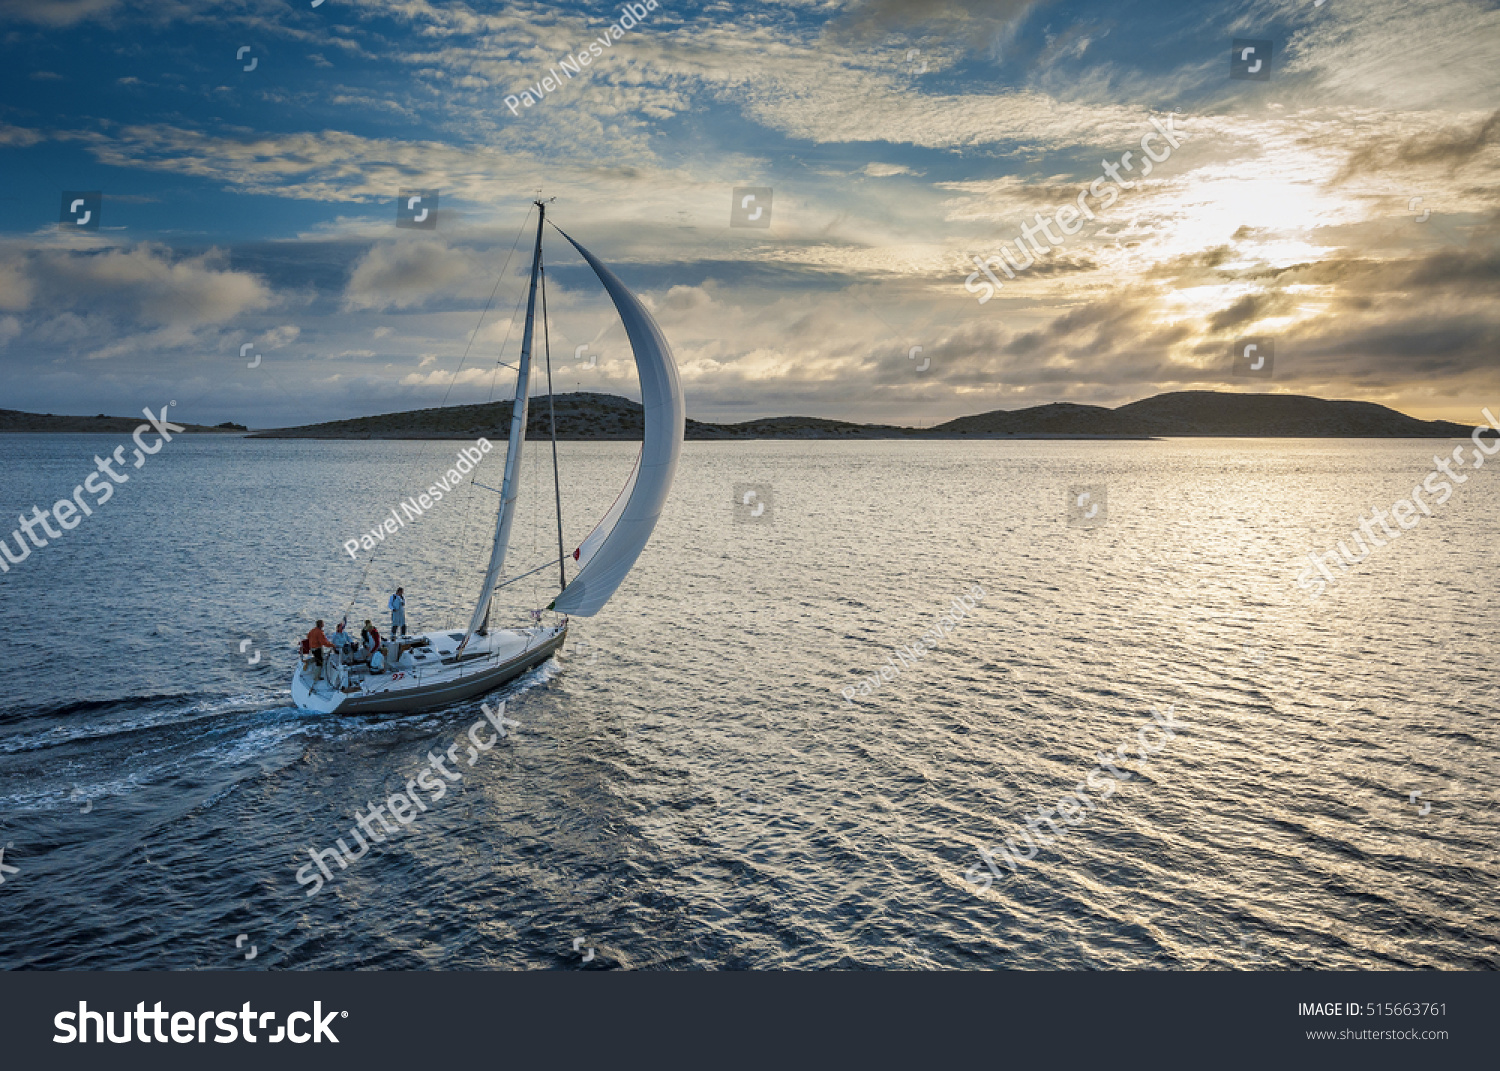 Sailing boat with spinnaker sail on open sea #515663761